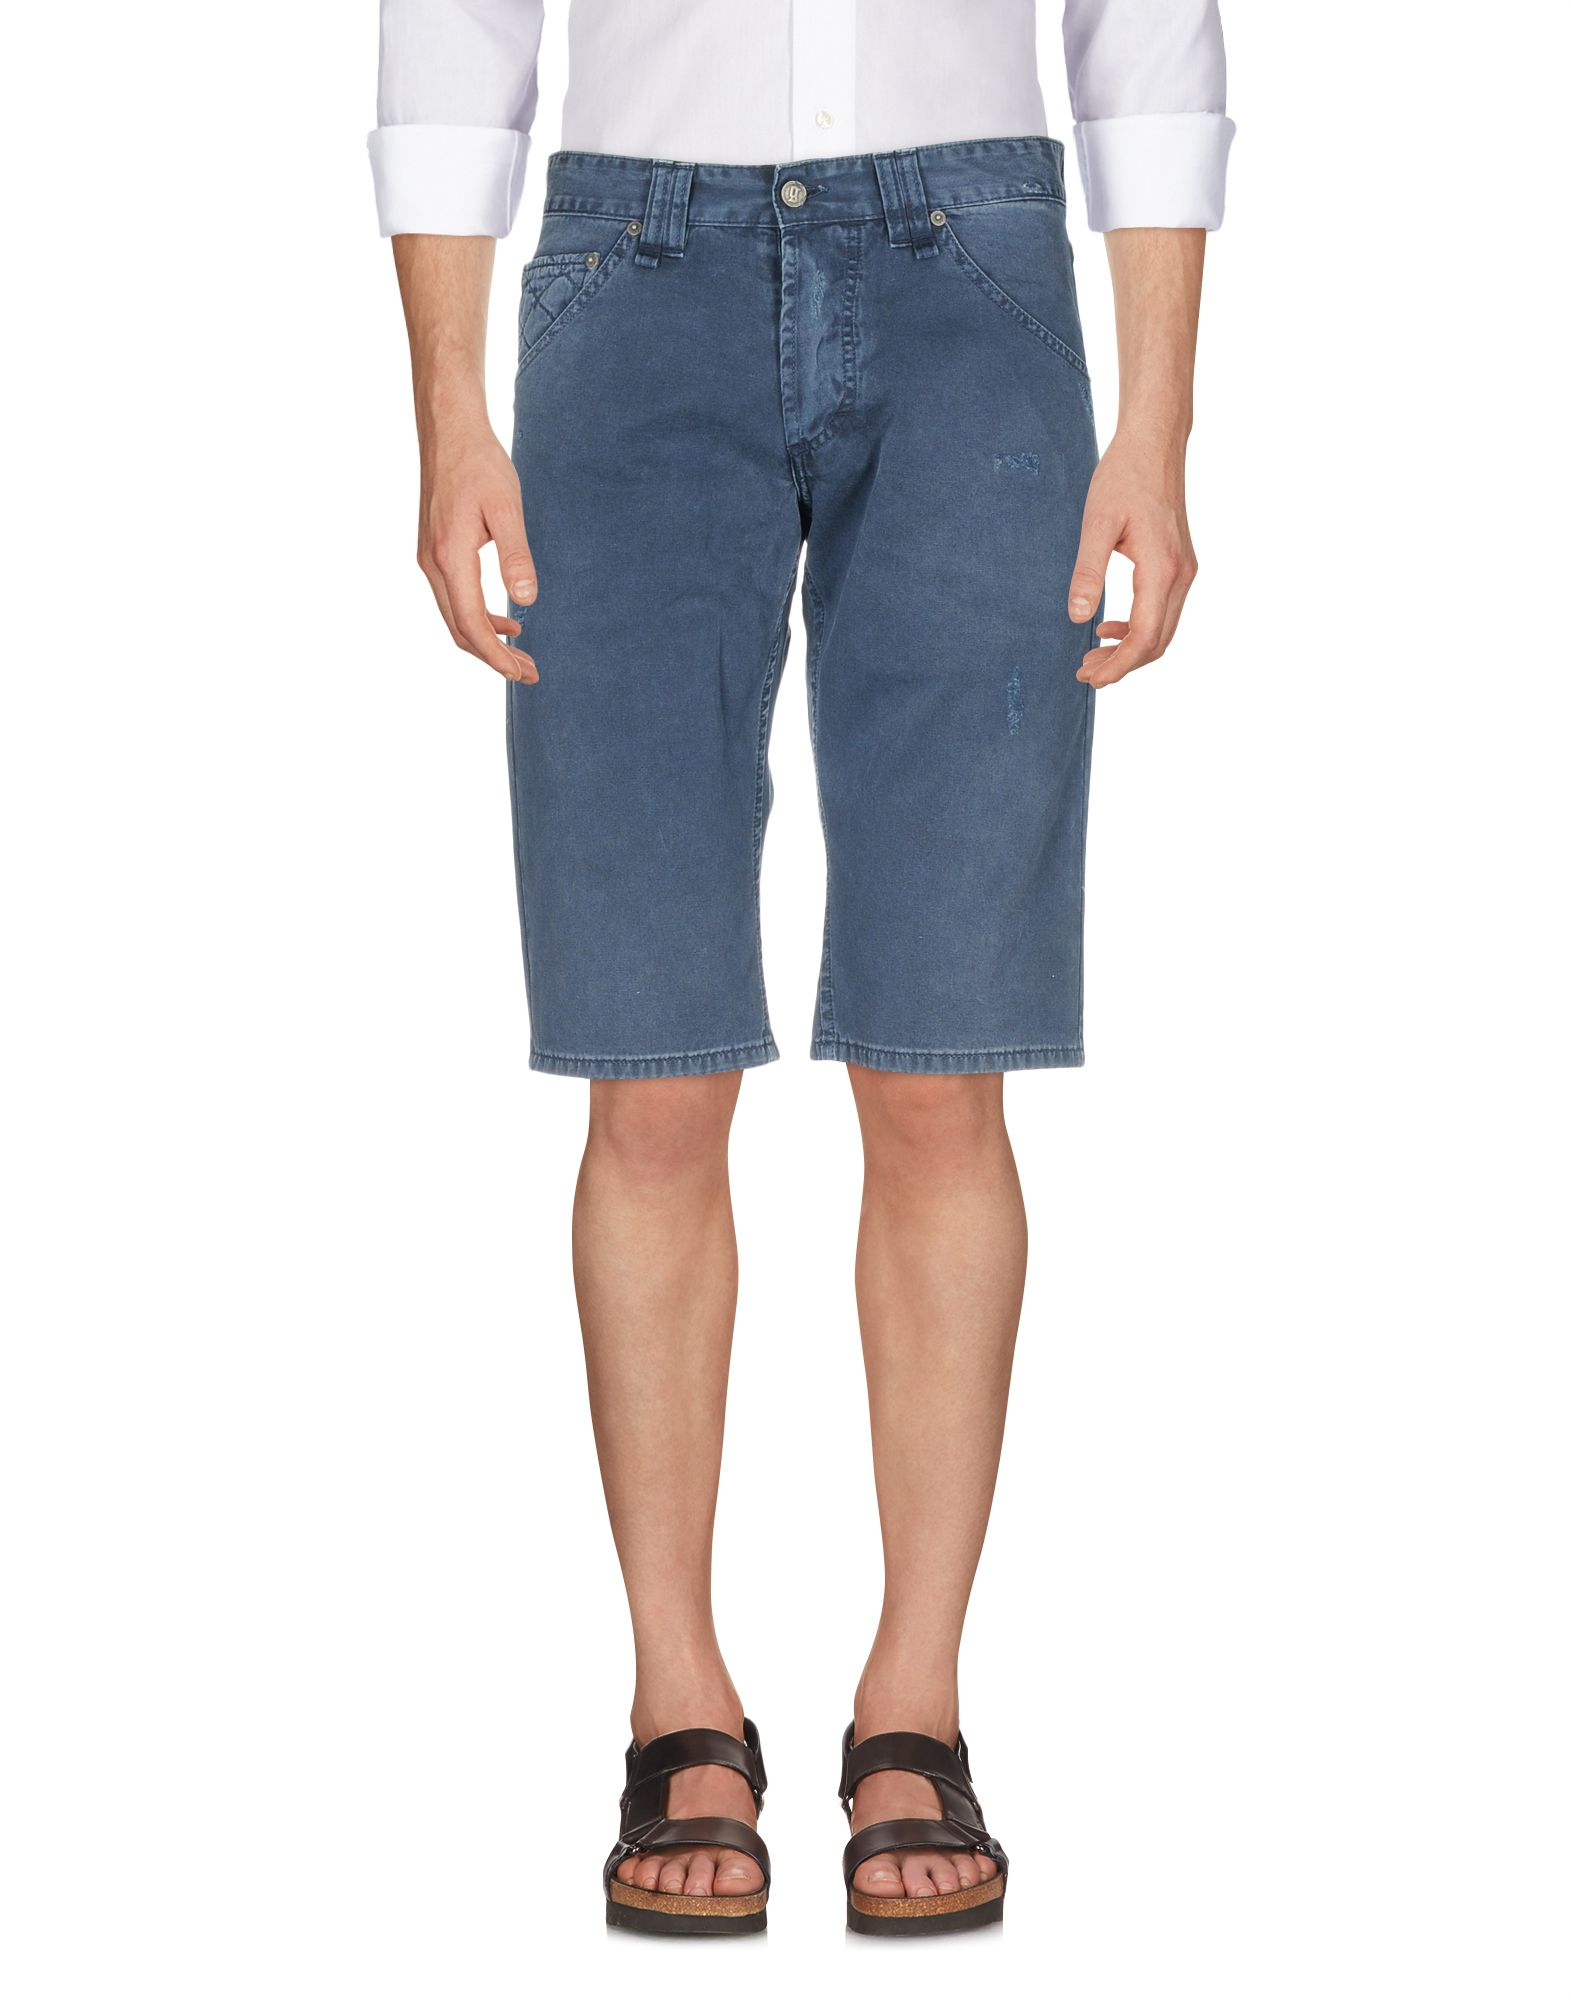 Shorts Galliano Uomo - Acquista online su